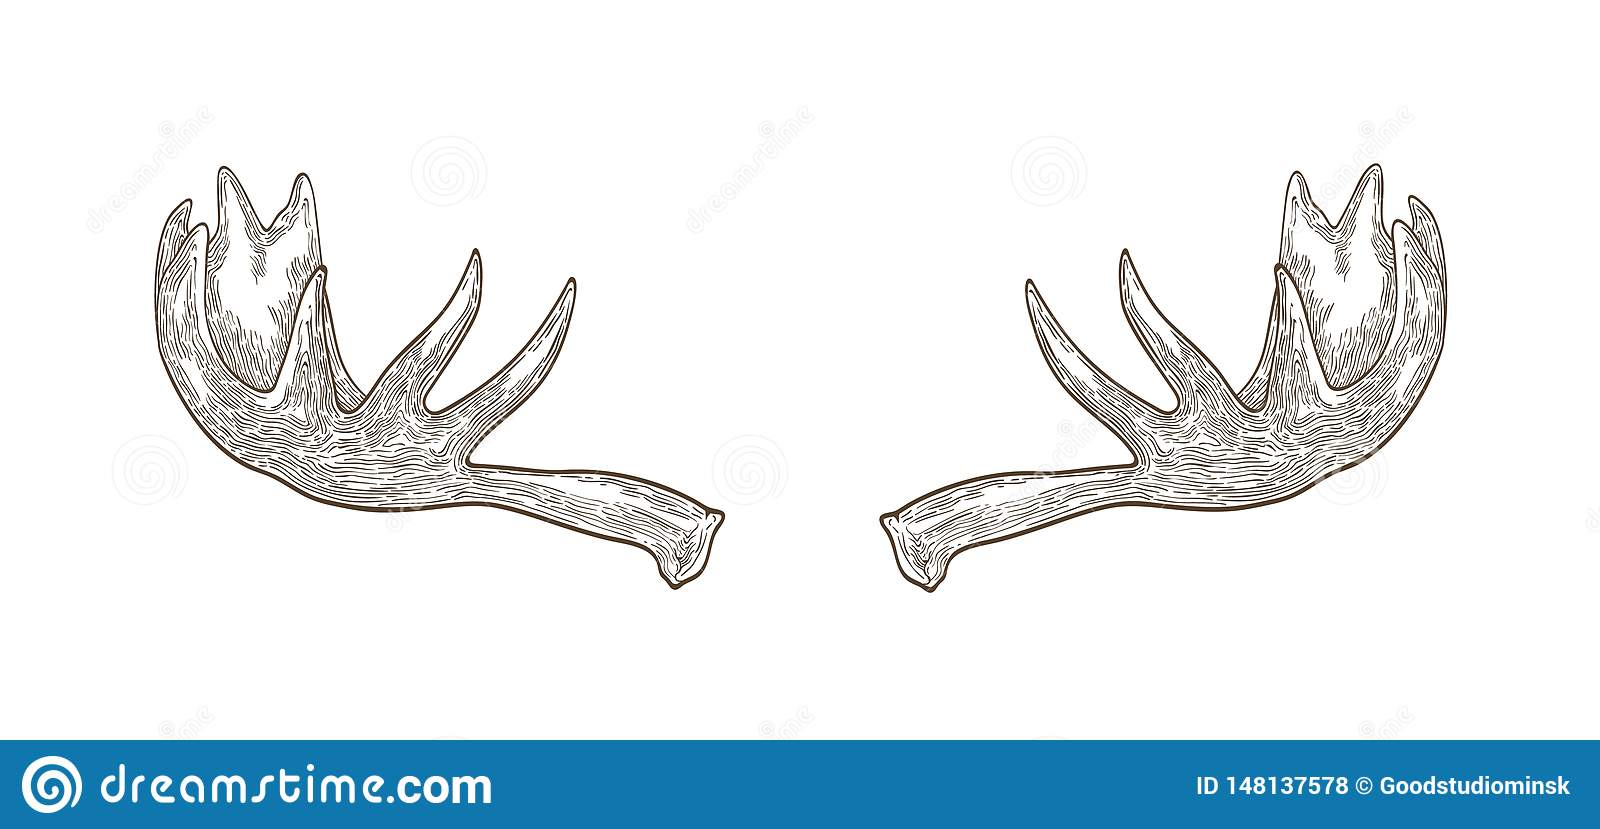 Decorative Drawing Of Elk Or Moose Palmate Antlers Trophy Or Haul